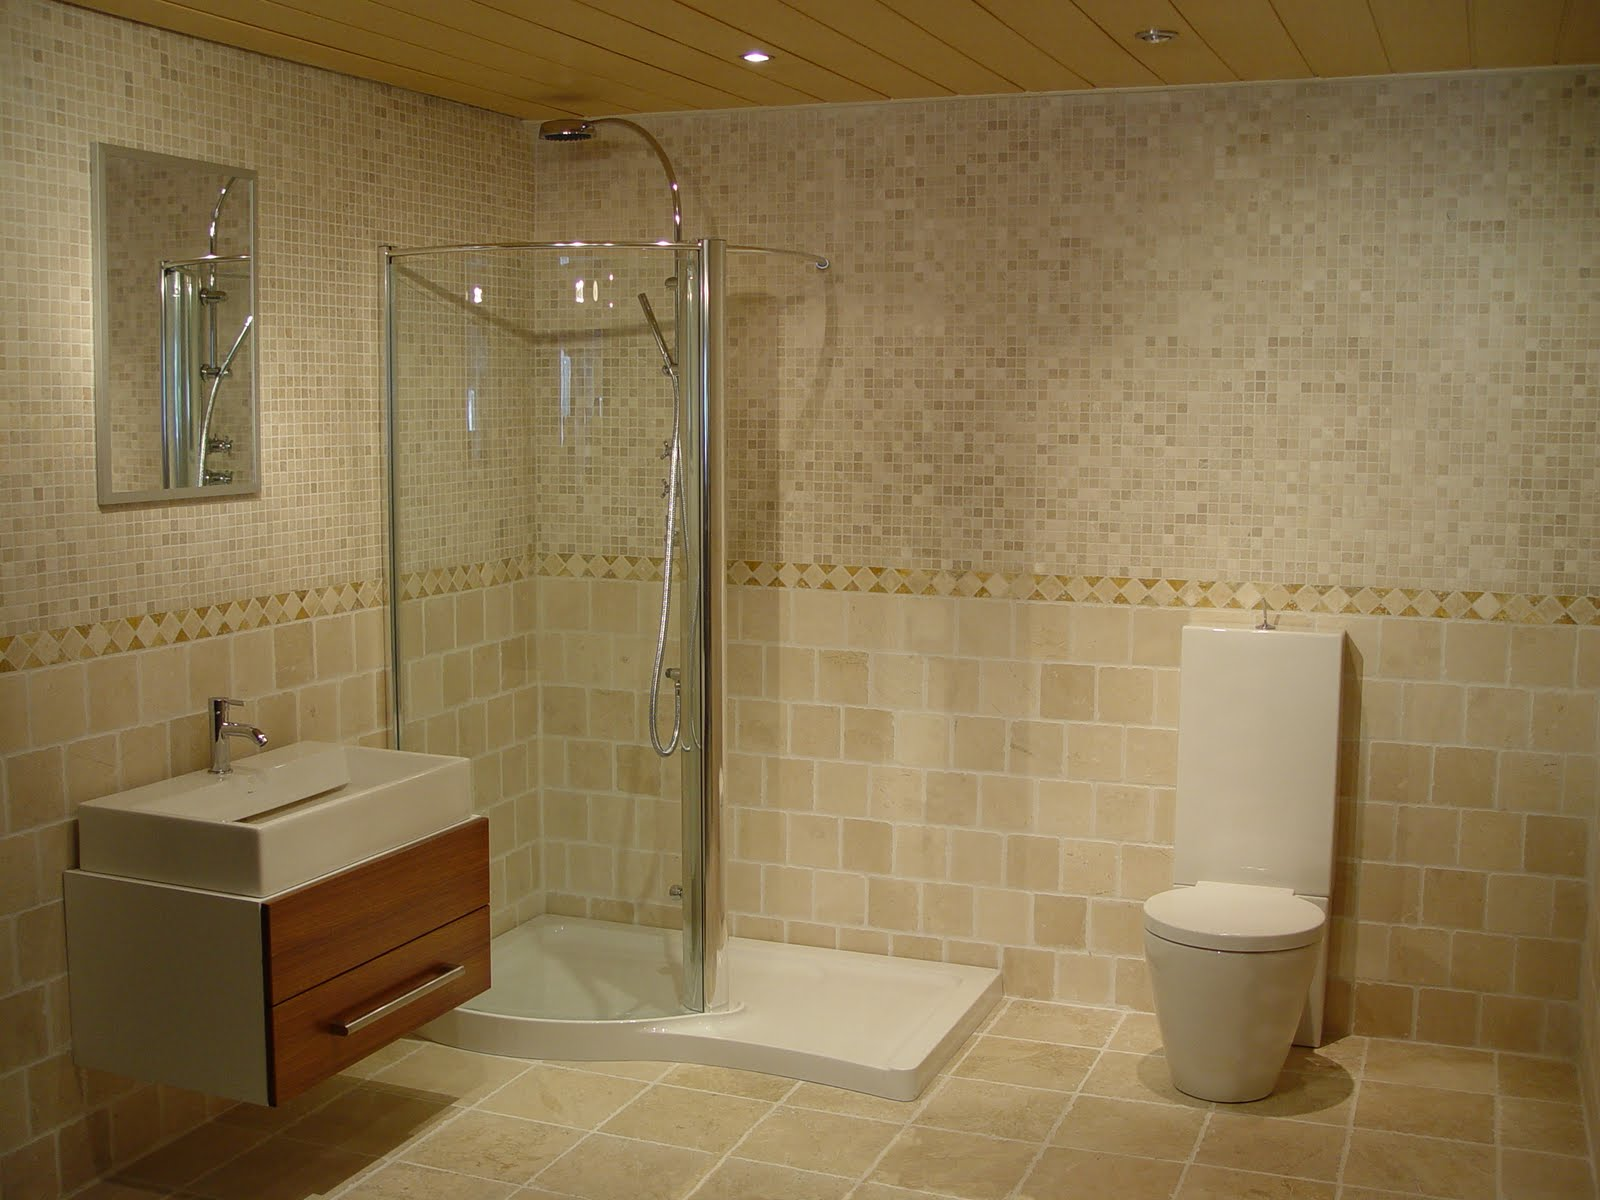 bathroom tiles designs pictures photo - 2